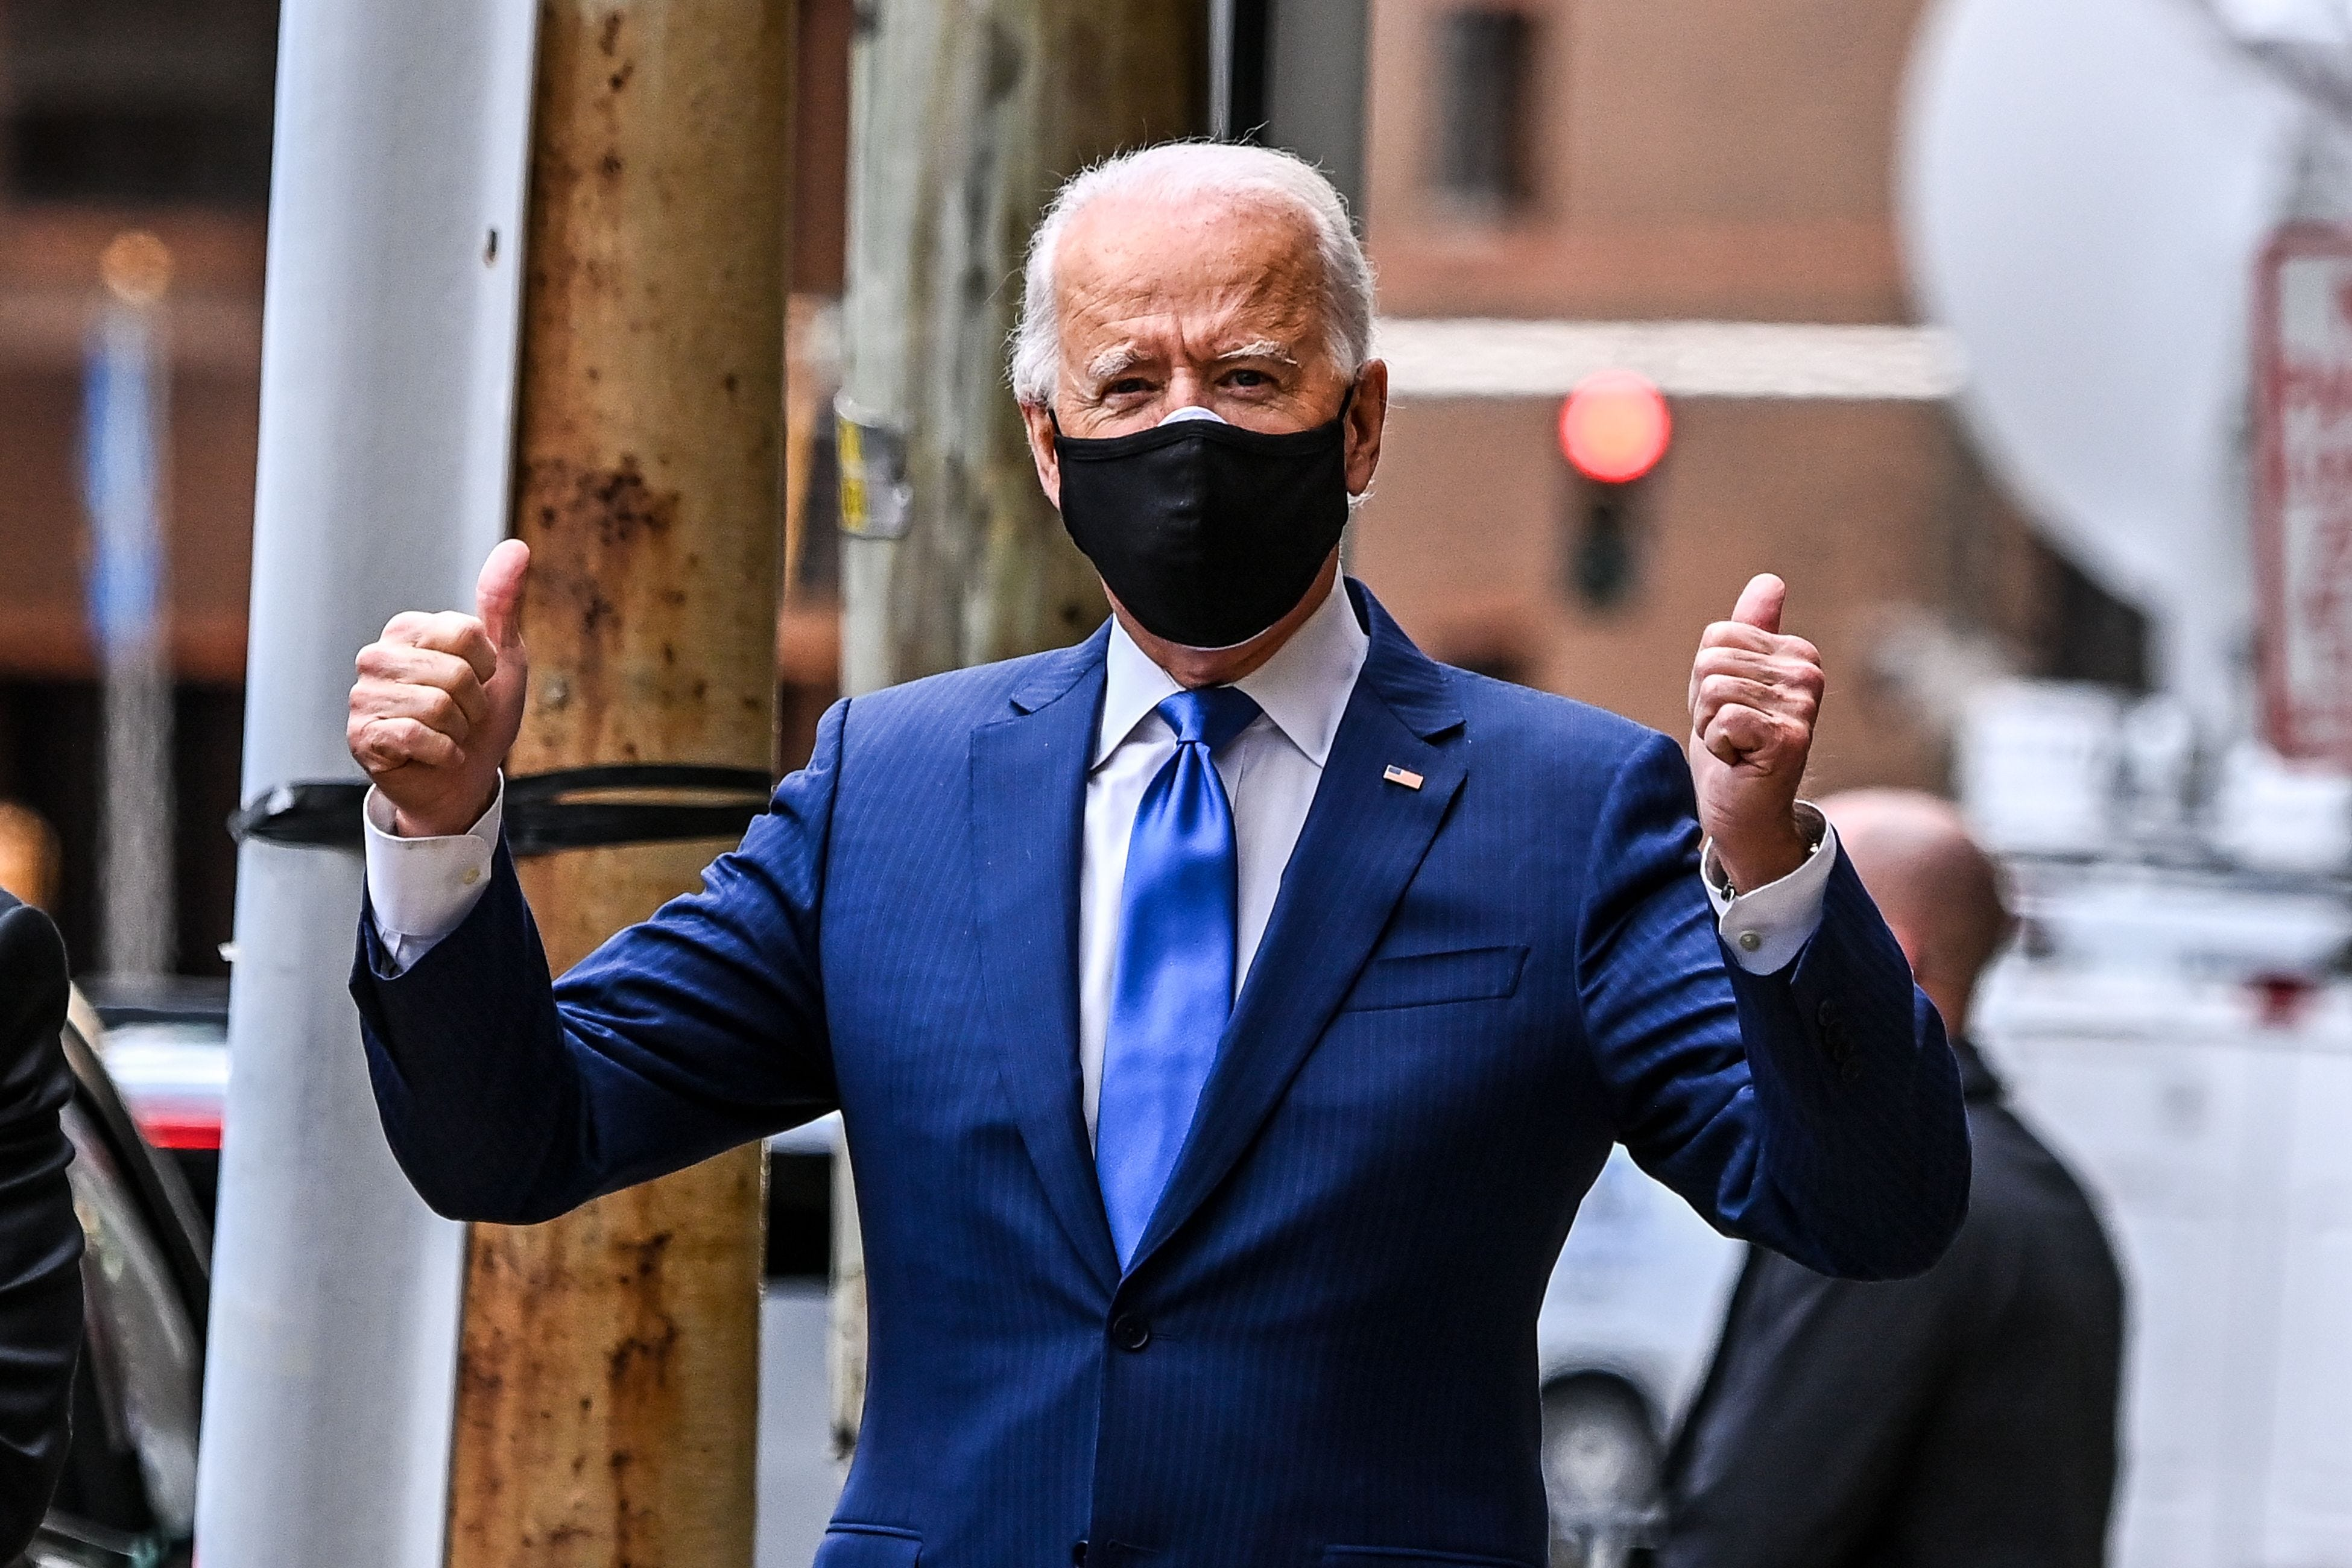 Jockeying for jobs: Tensions simmer inside Biden transition as new administration takes shape